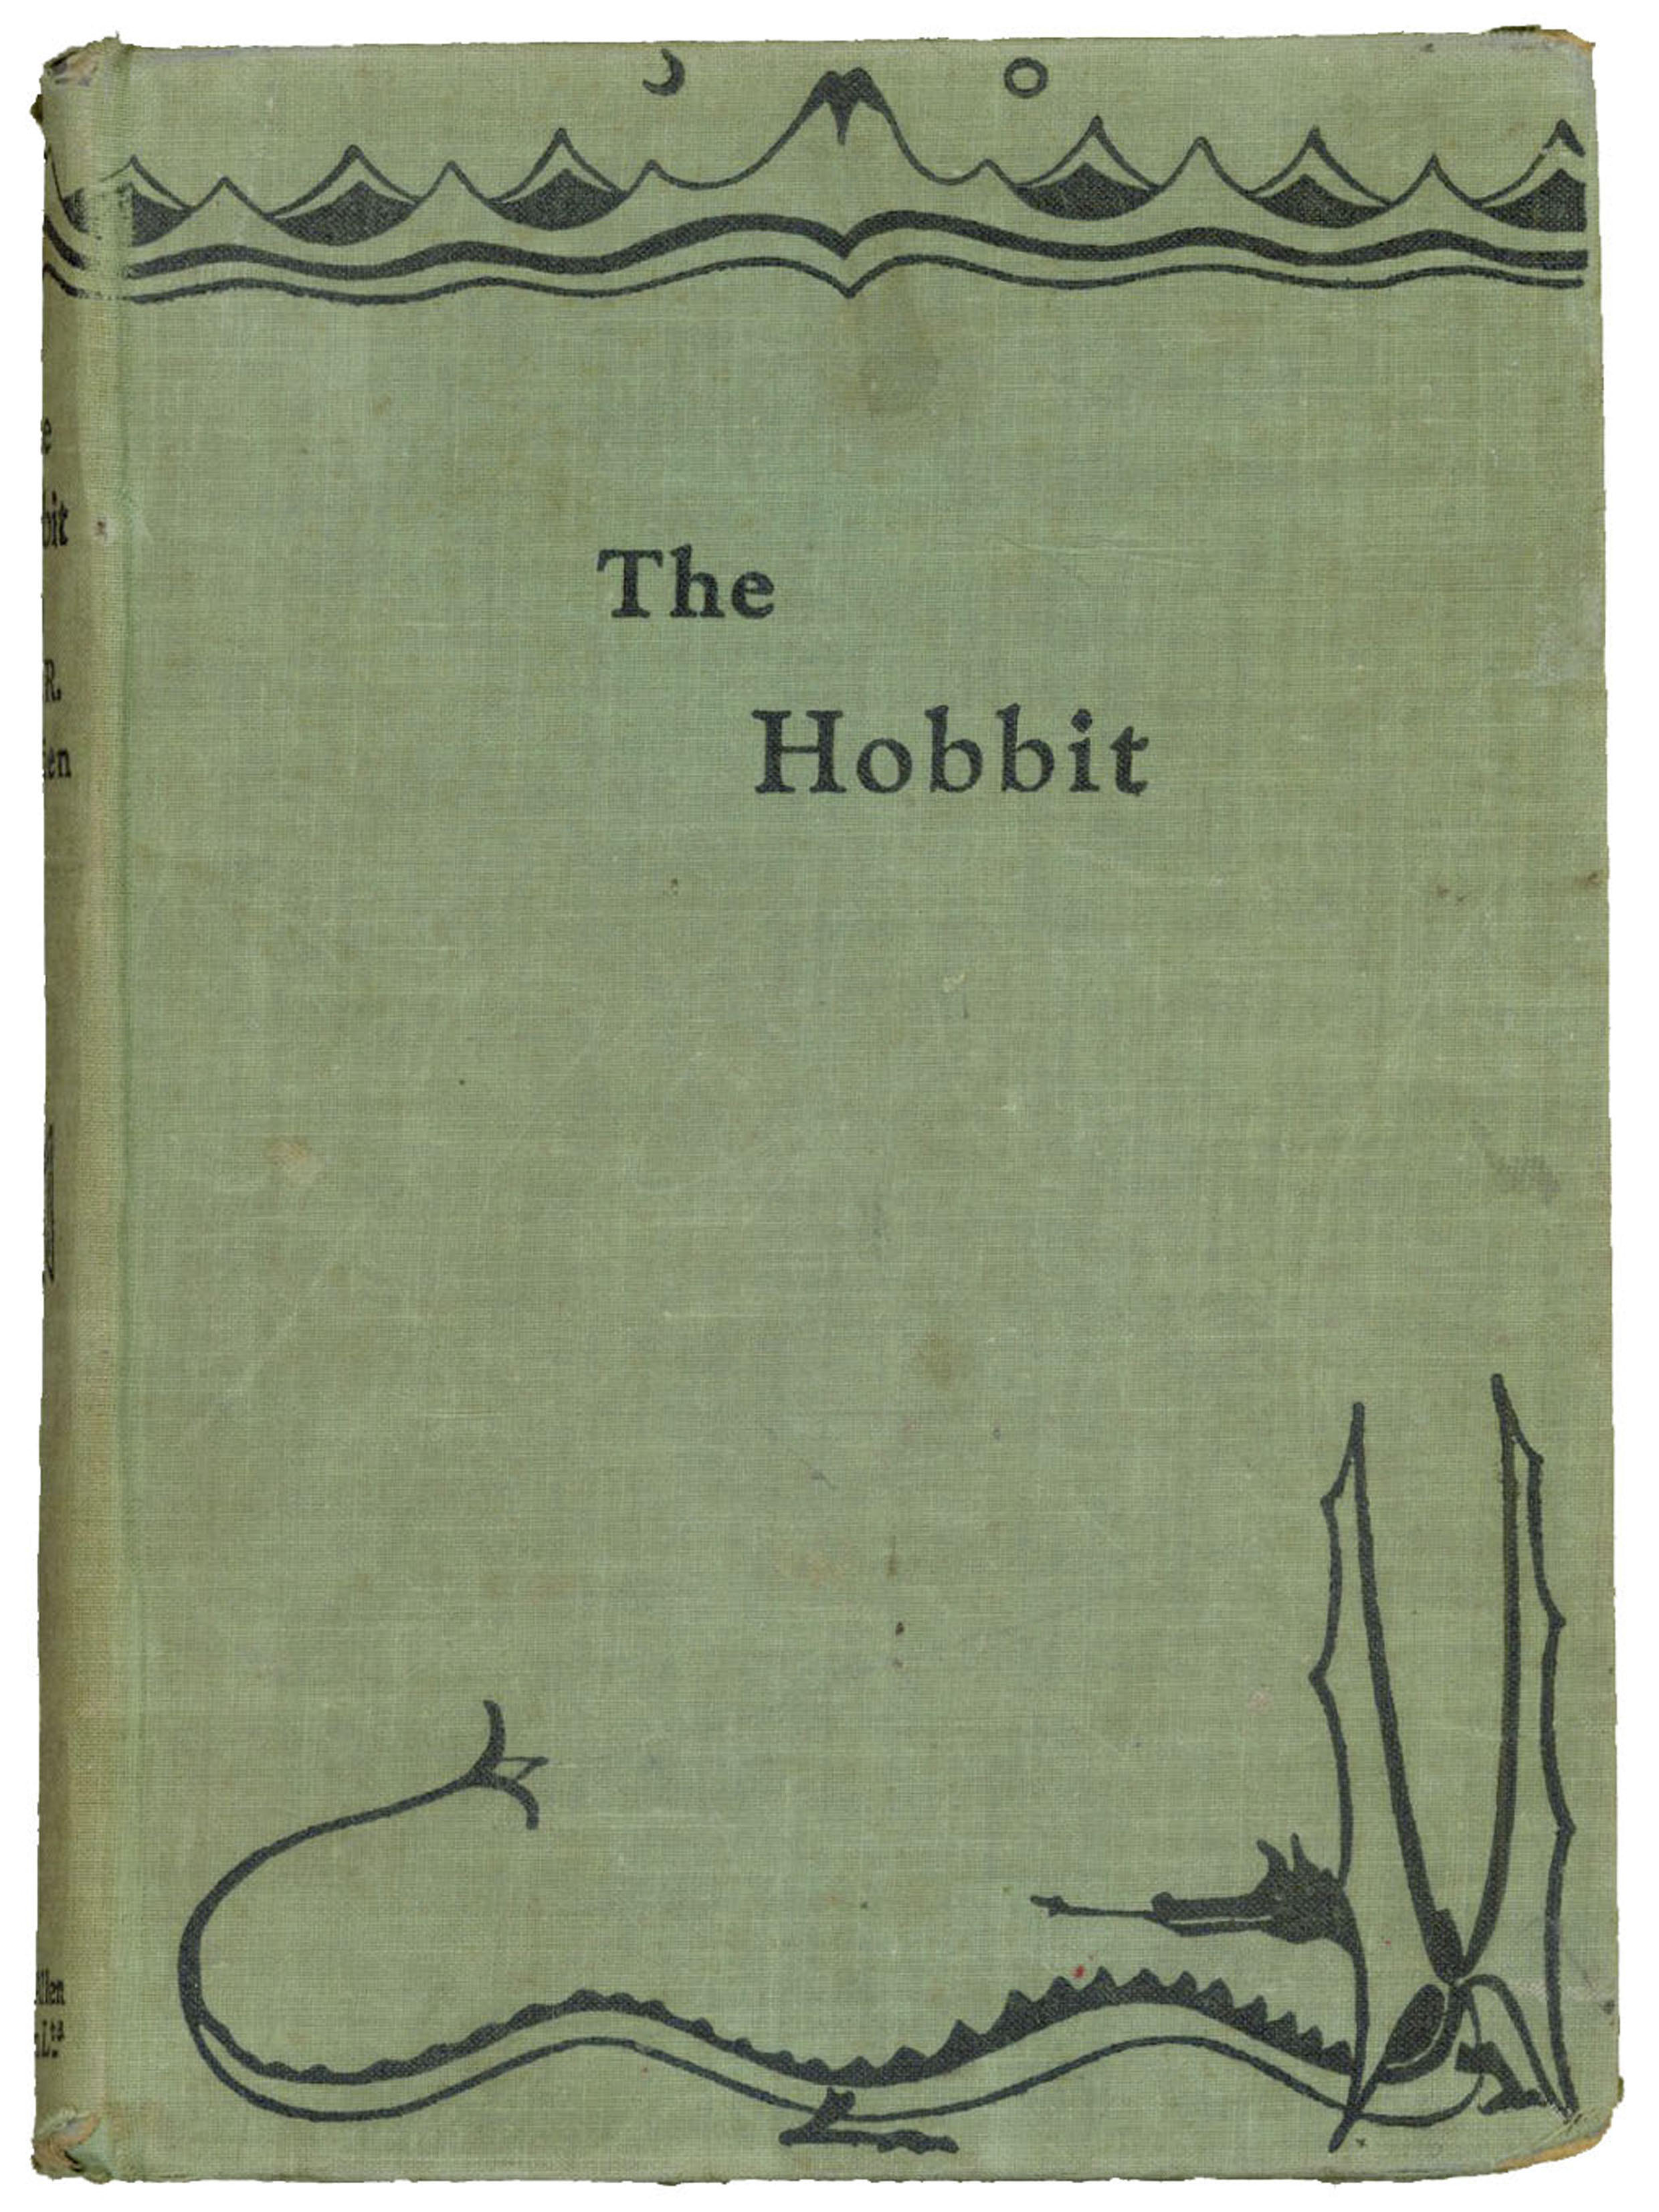 Hobbit Bonhams 20706 431